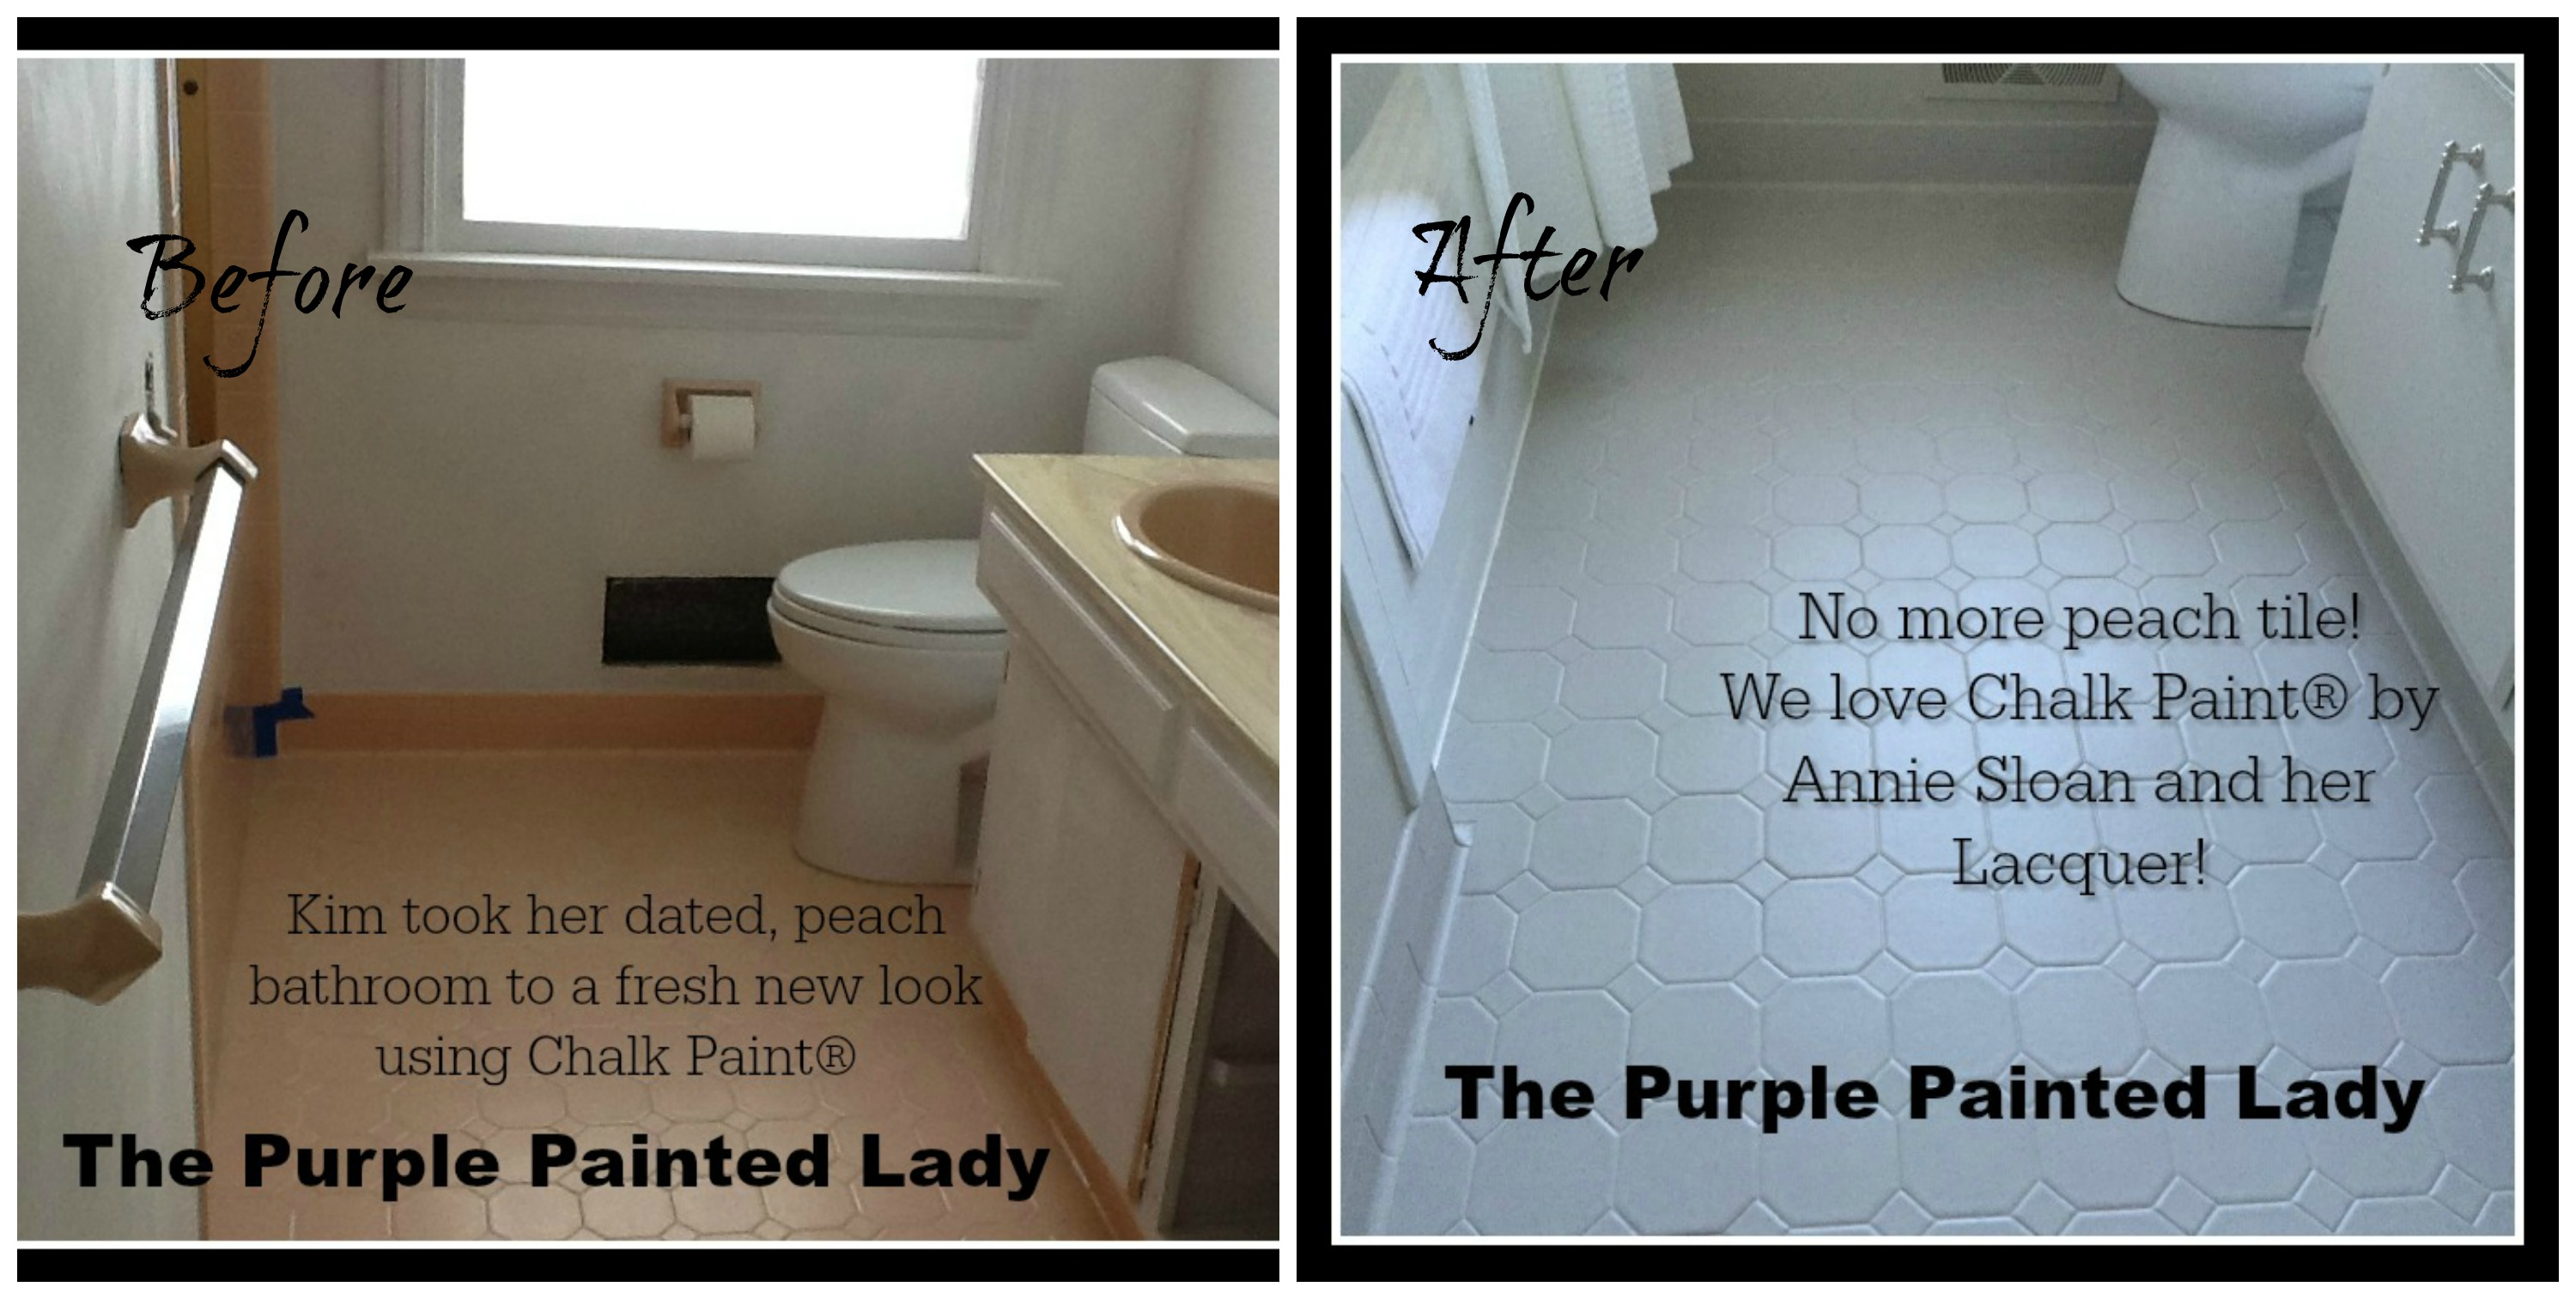 The purple painted lady yes we sell chalk paint on line click shop our on line store - Can i paint over bathroom tiles ...